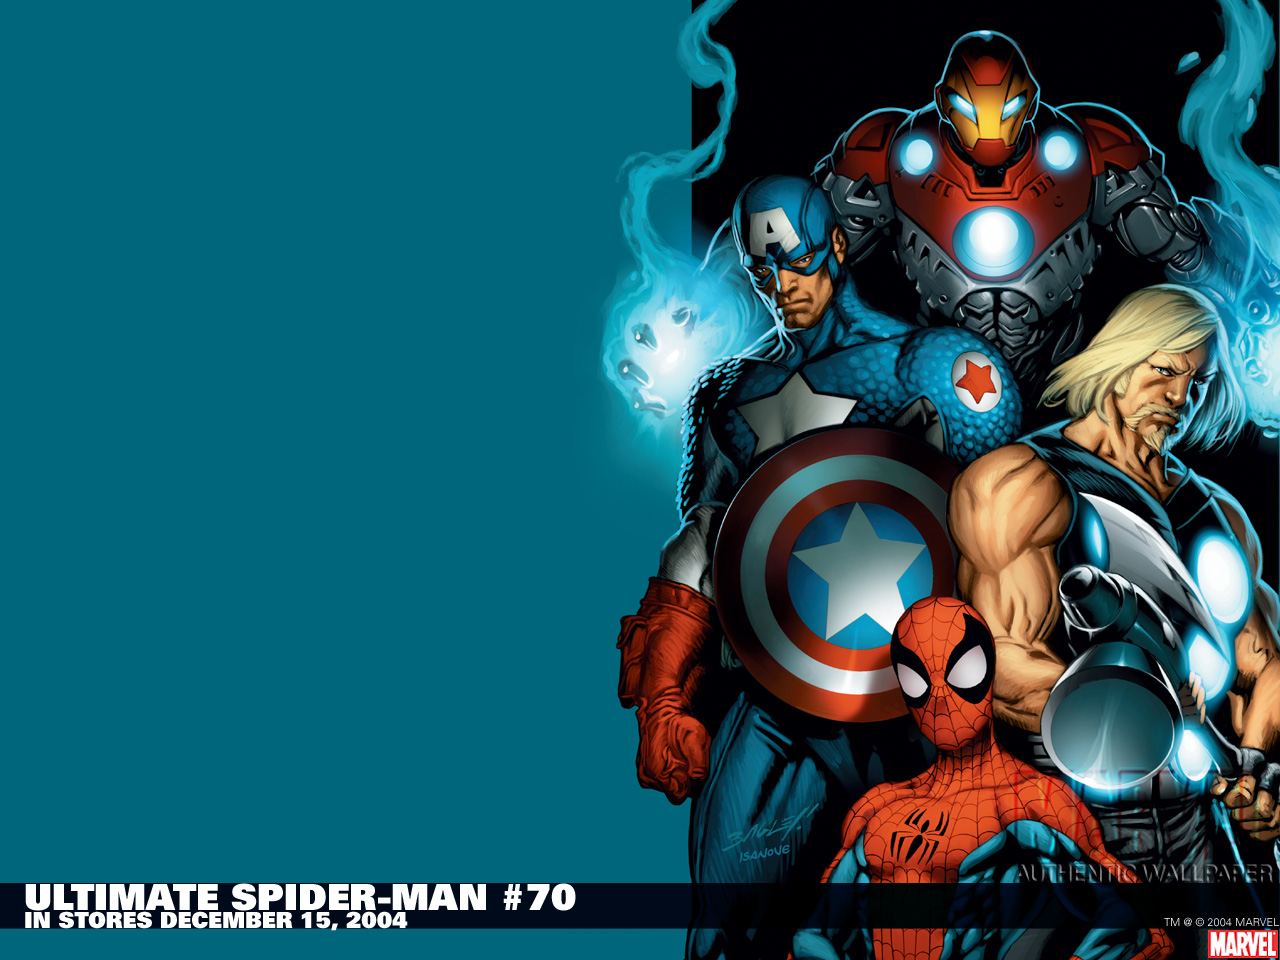 Digital HD Wallpapers Amazing Marvel HQ Wallpapers Pack [Set 2] 1280x960